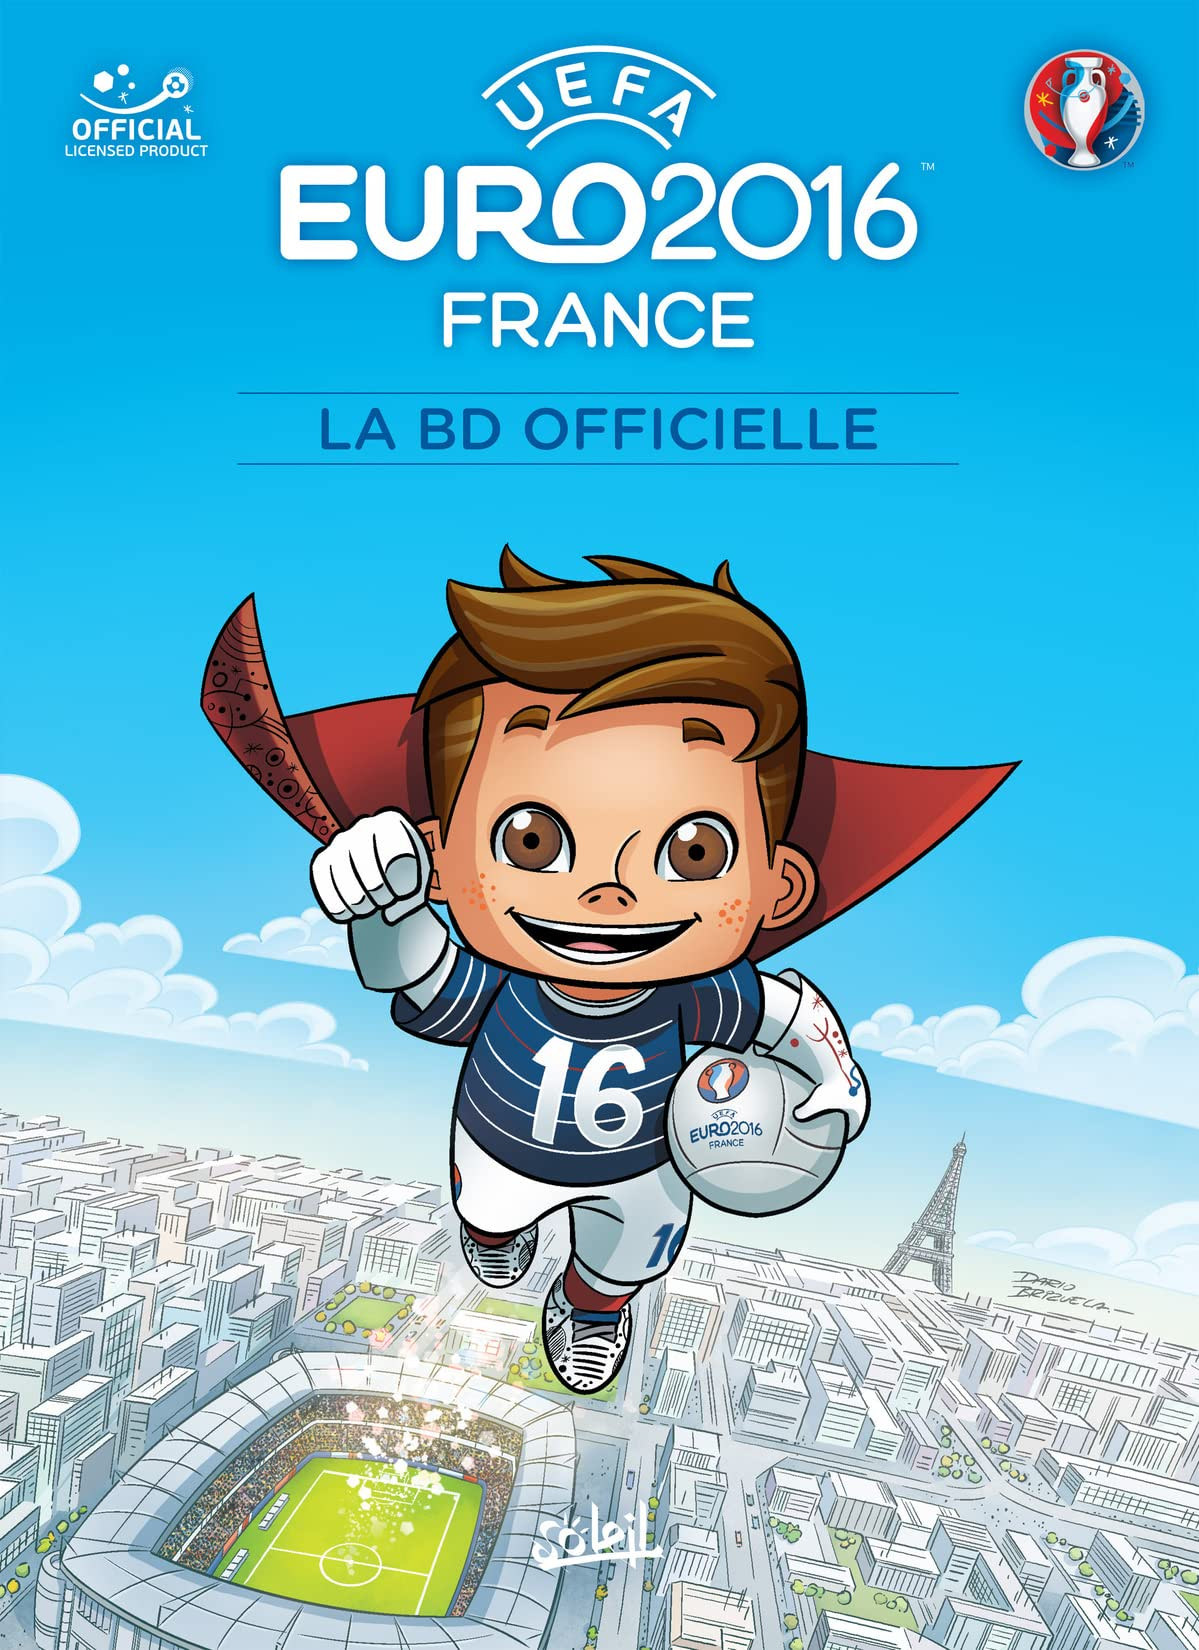 EURO 2016: LA BD Officielle